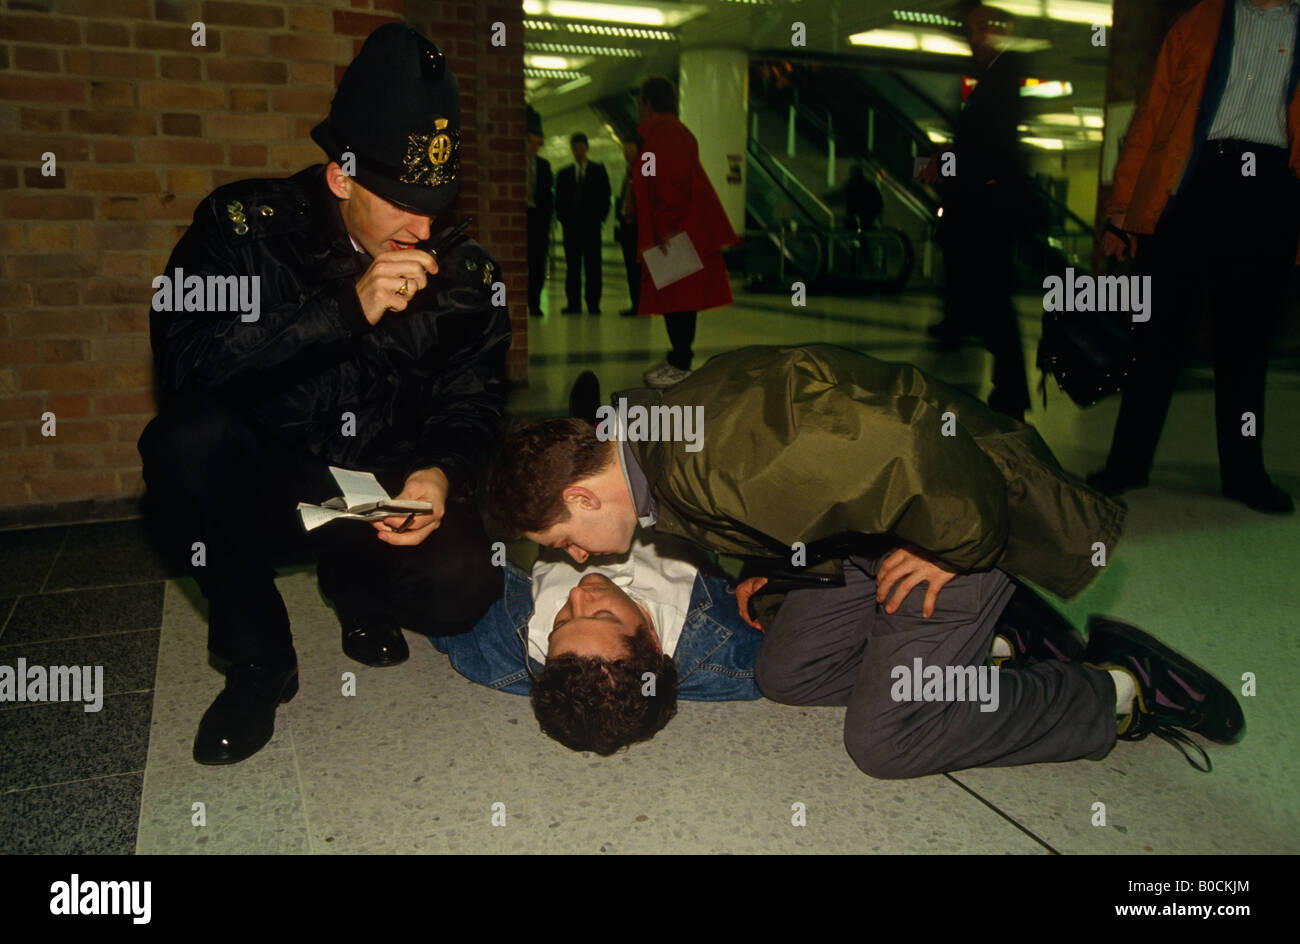 A City of London Police officer radios for medical assistance for unconscious man drunk from alcohol at Liverpool - Stock Image